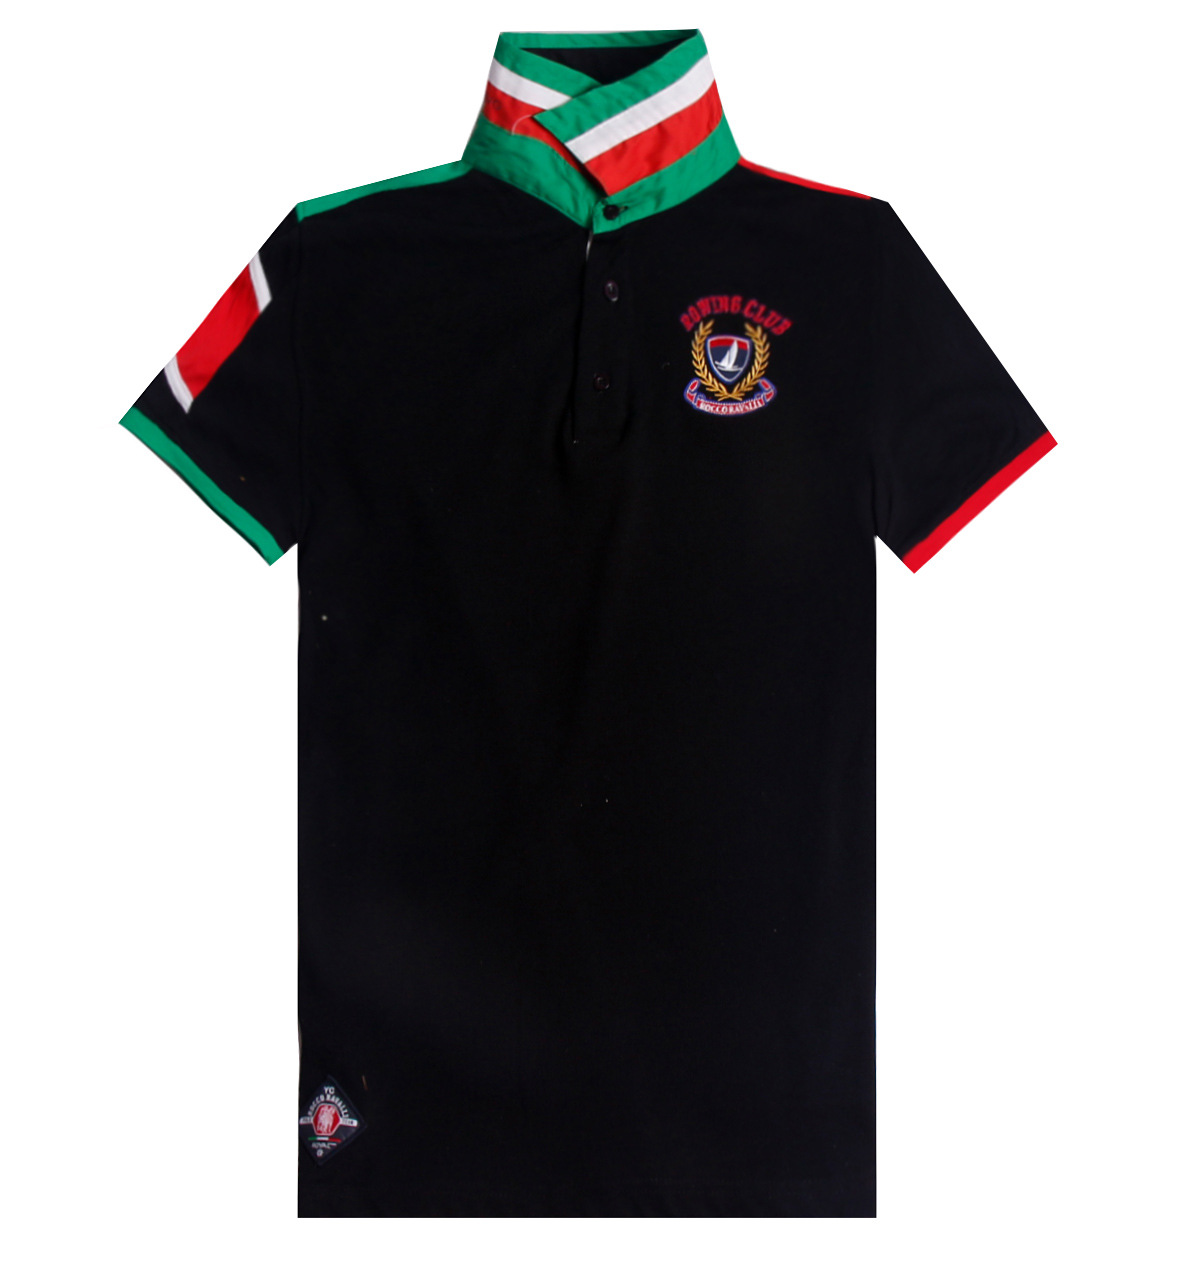 Compare prices on polo club clothing online shopping buy for Shirts online shopping lowest price